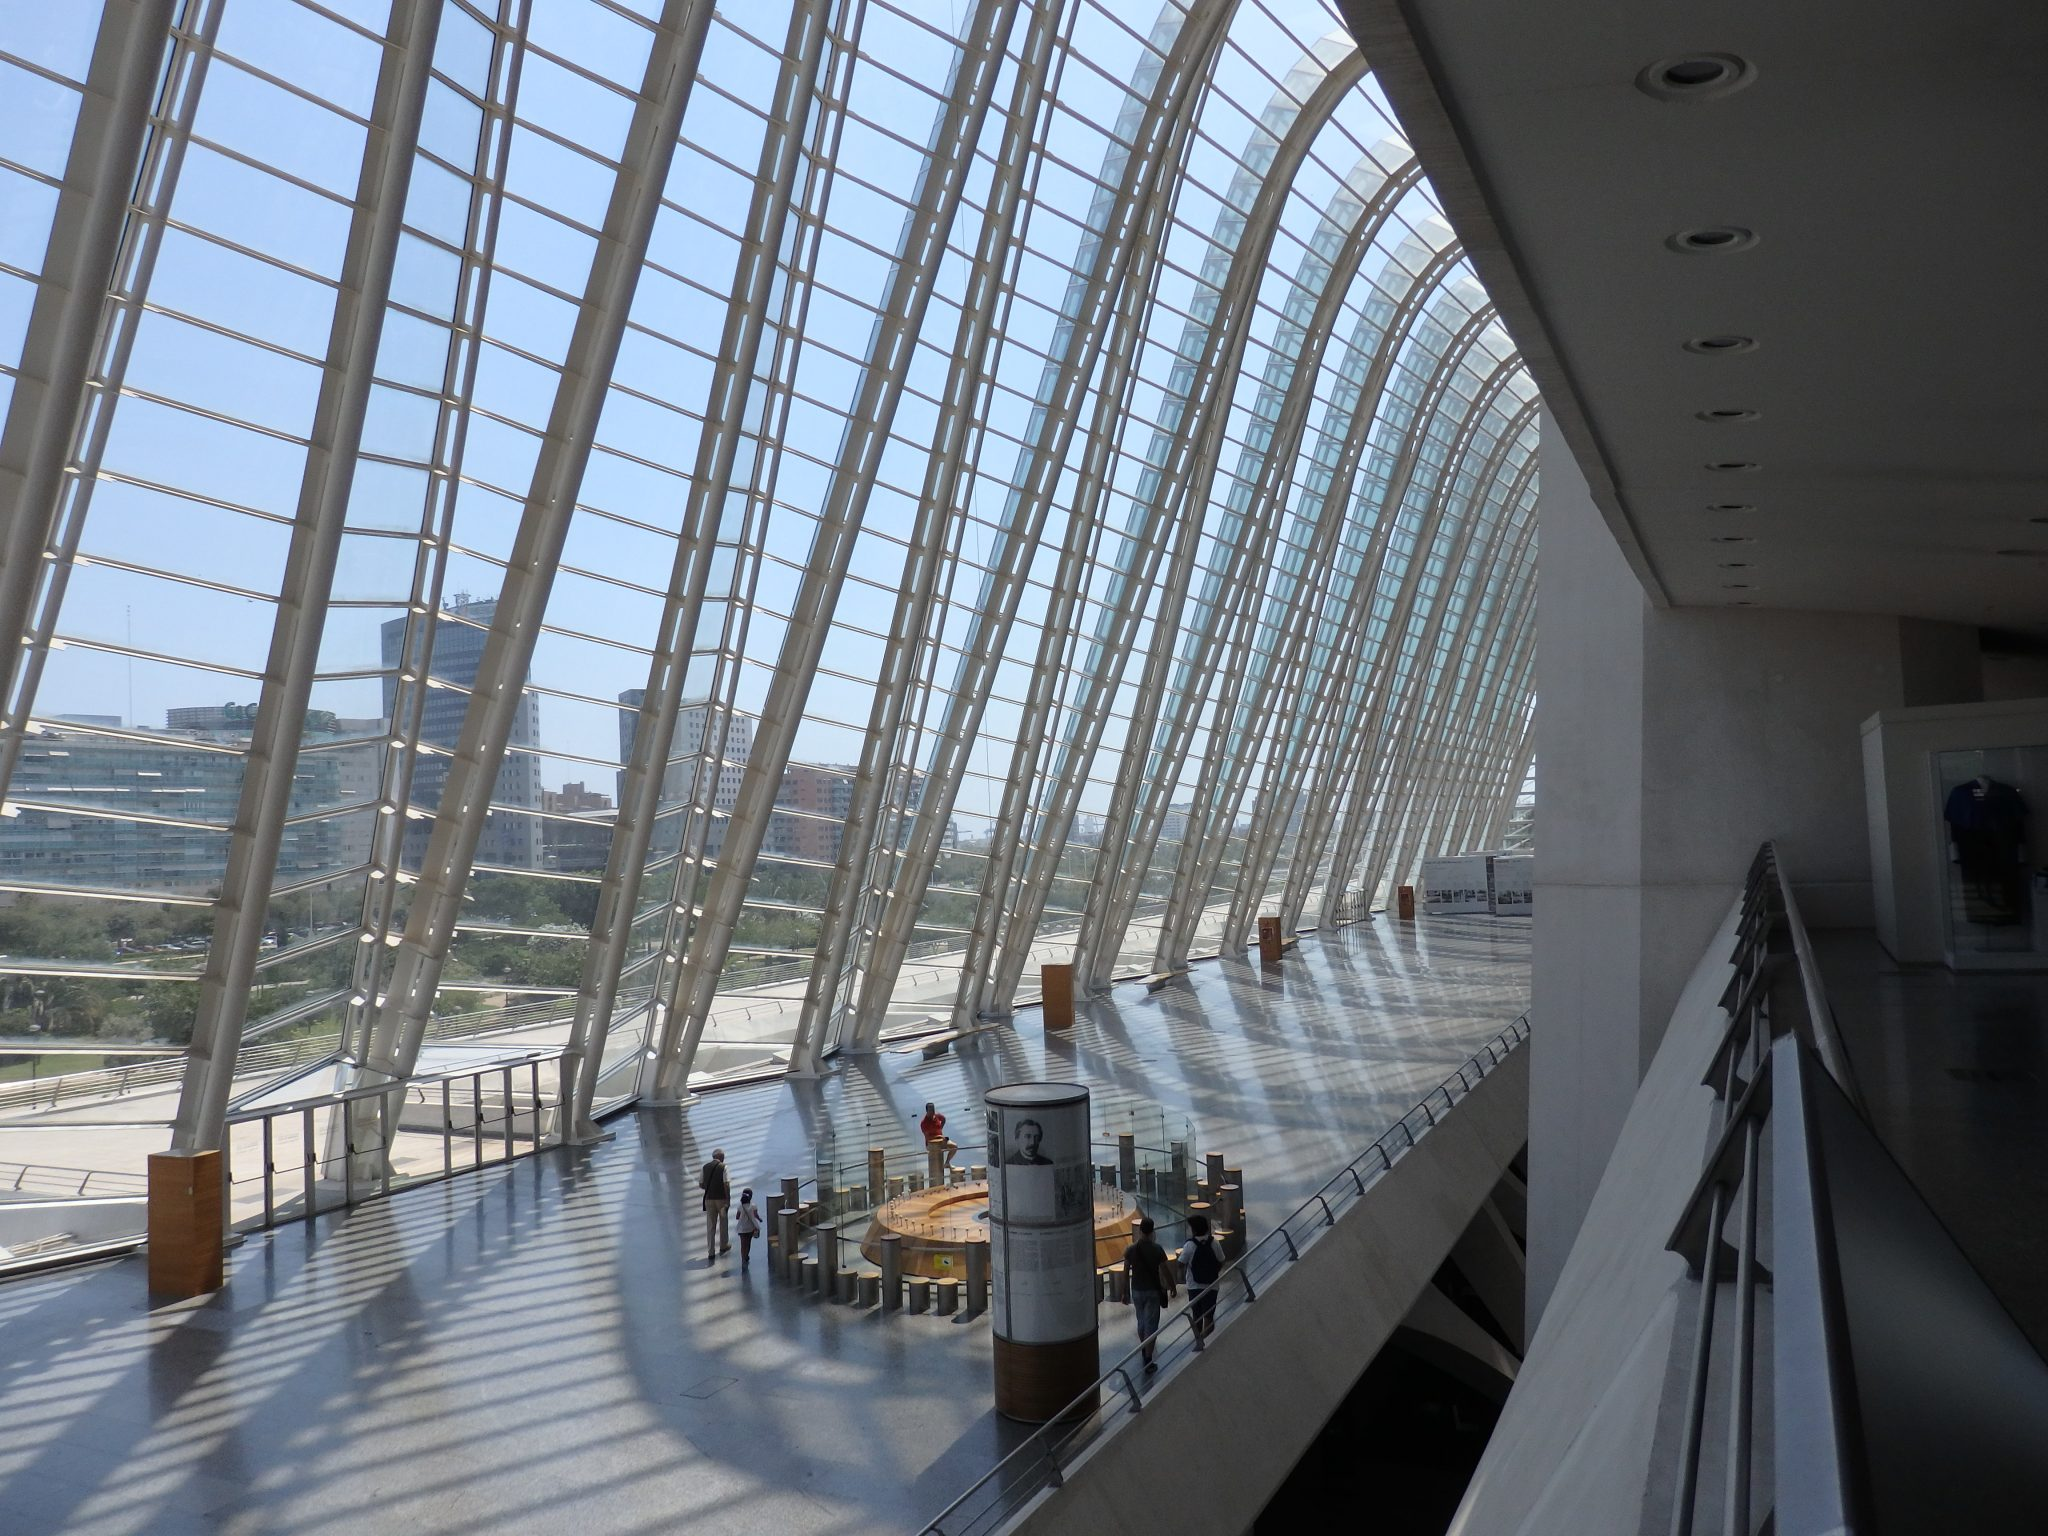 inside the Museum of Science at the City of Arts and Sciences in Valencia, Spain